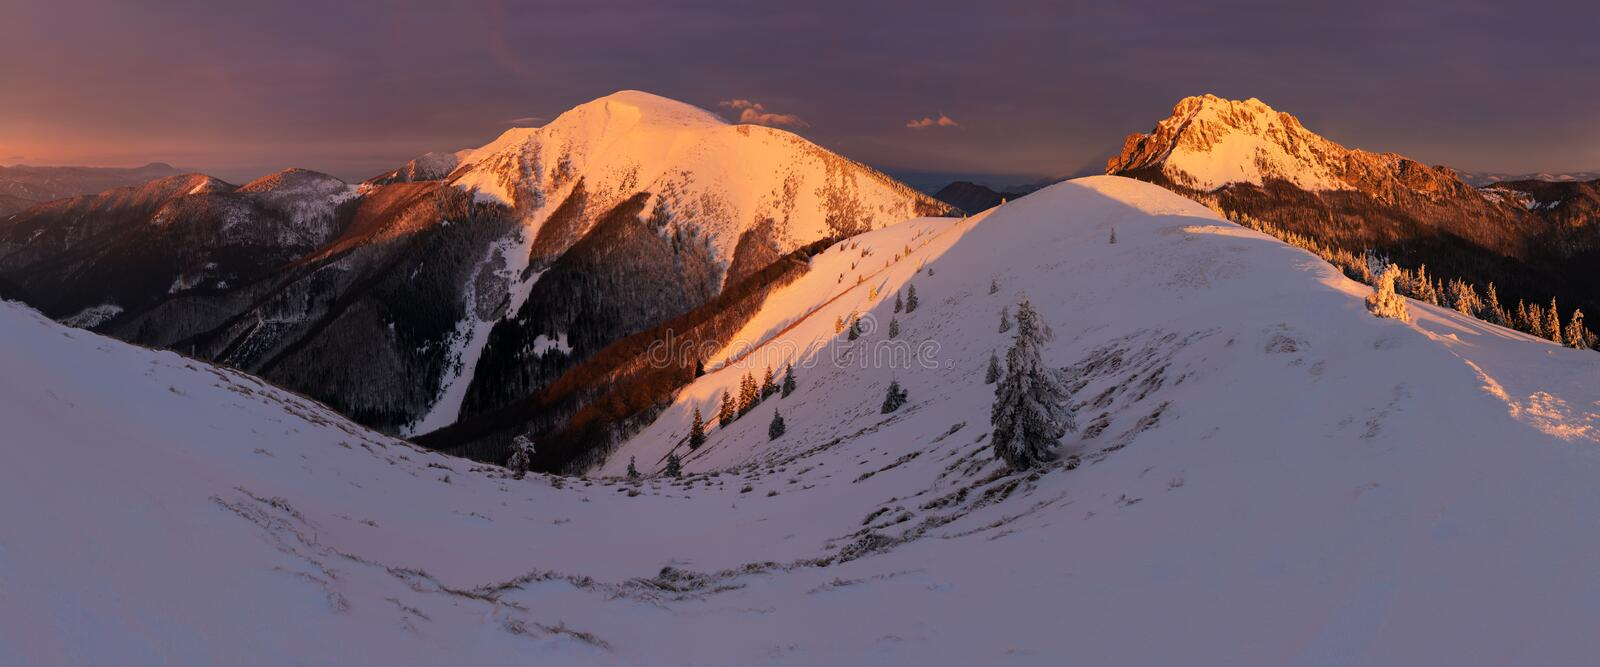 Winter landscape of High Tatra Mountains on Small cold valley after fresh snowfall. High Tatras, Slovakia Windy and cold weather. royalty free stock photos